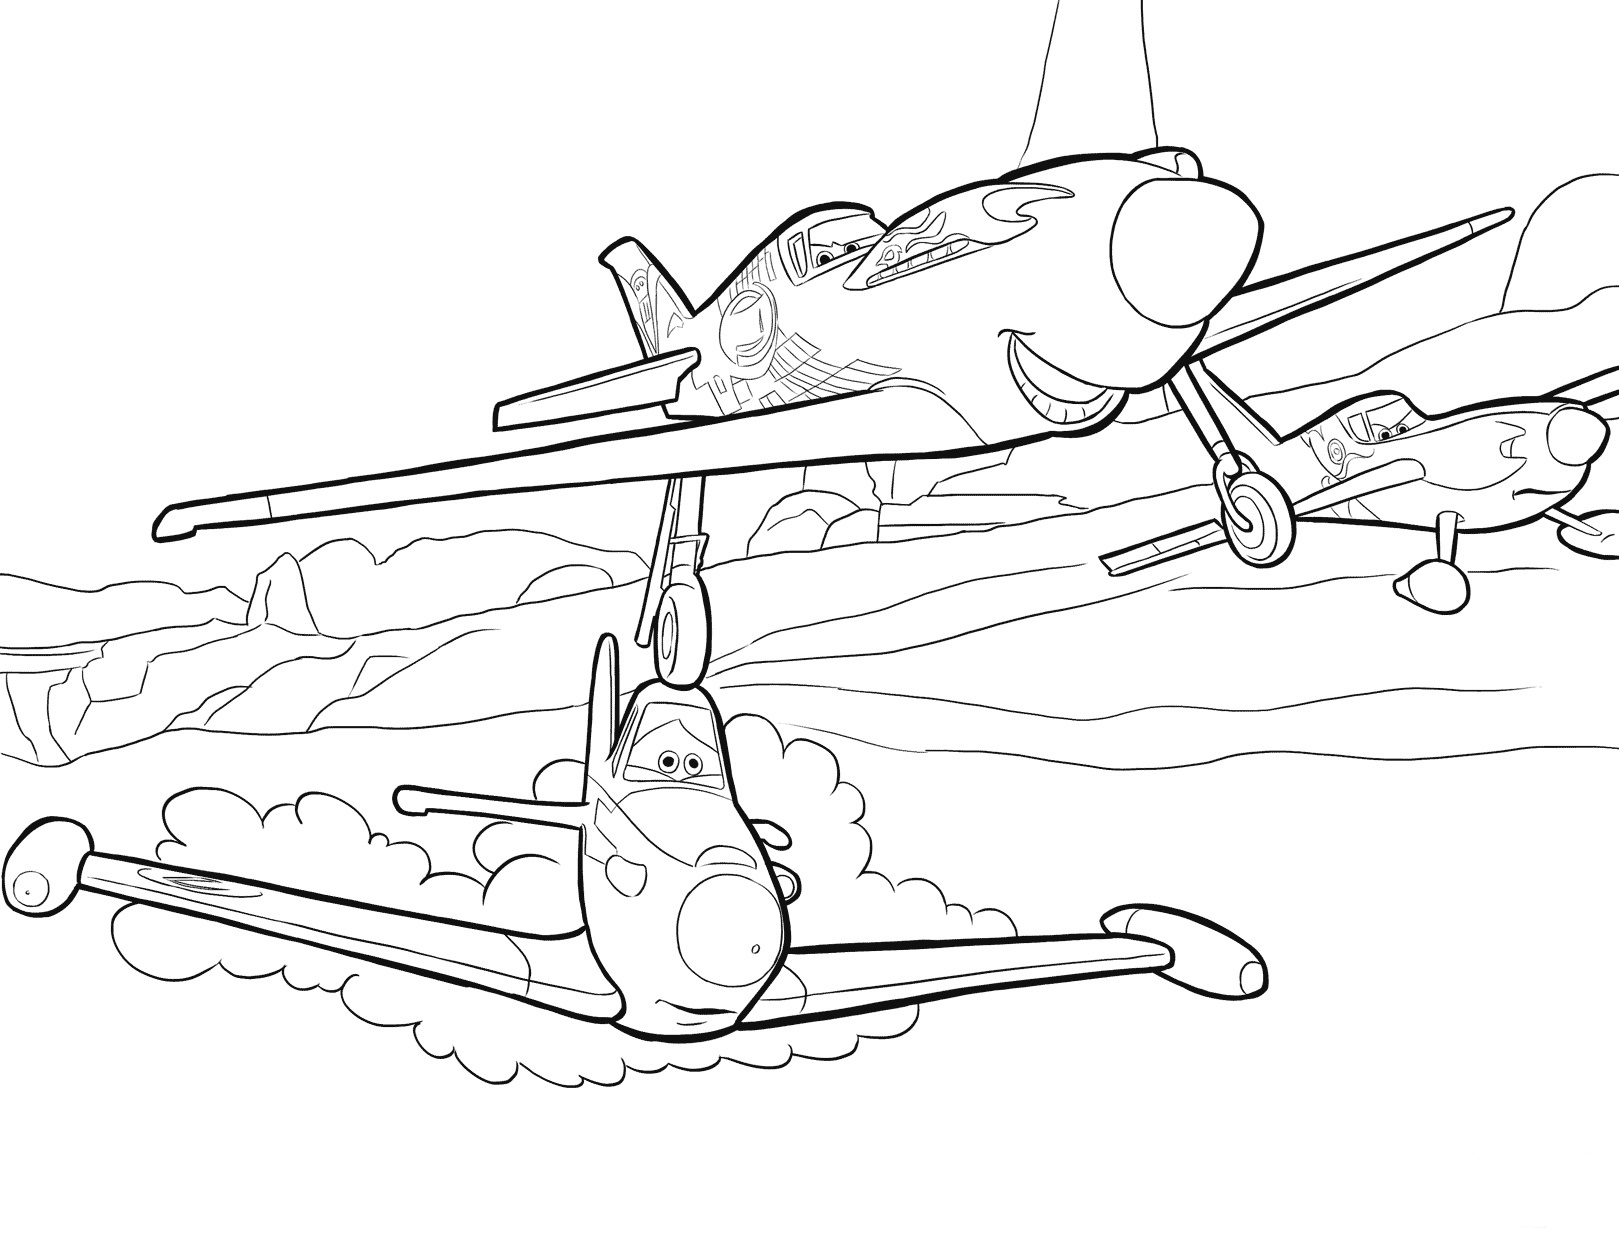 Planes Coloring Pages - Best Coloring Pages For Kids